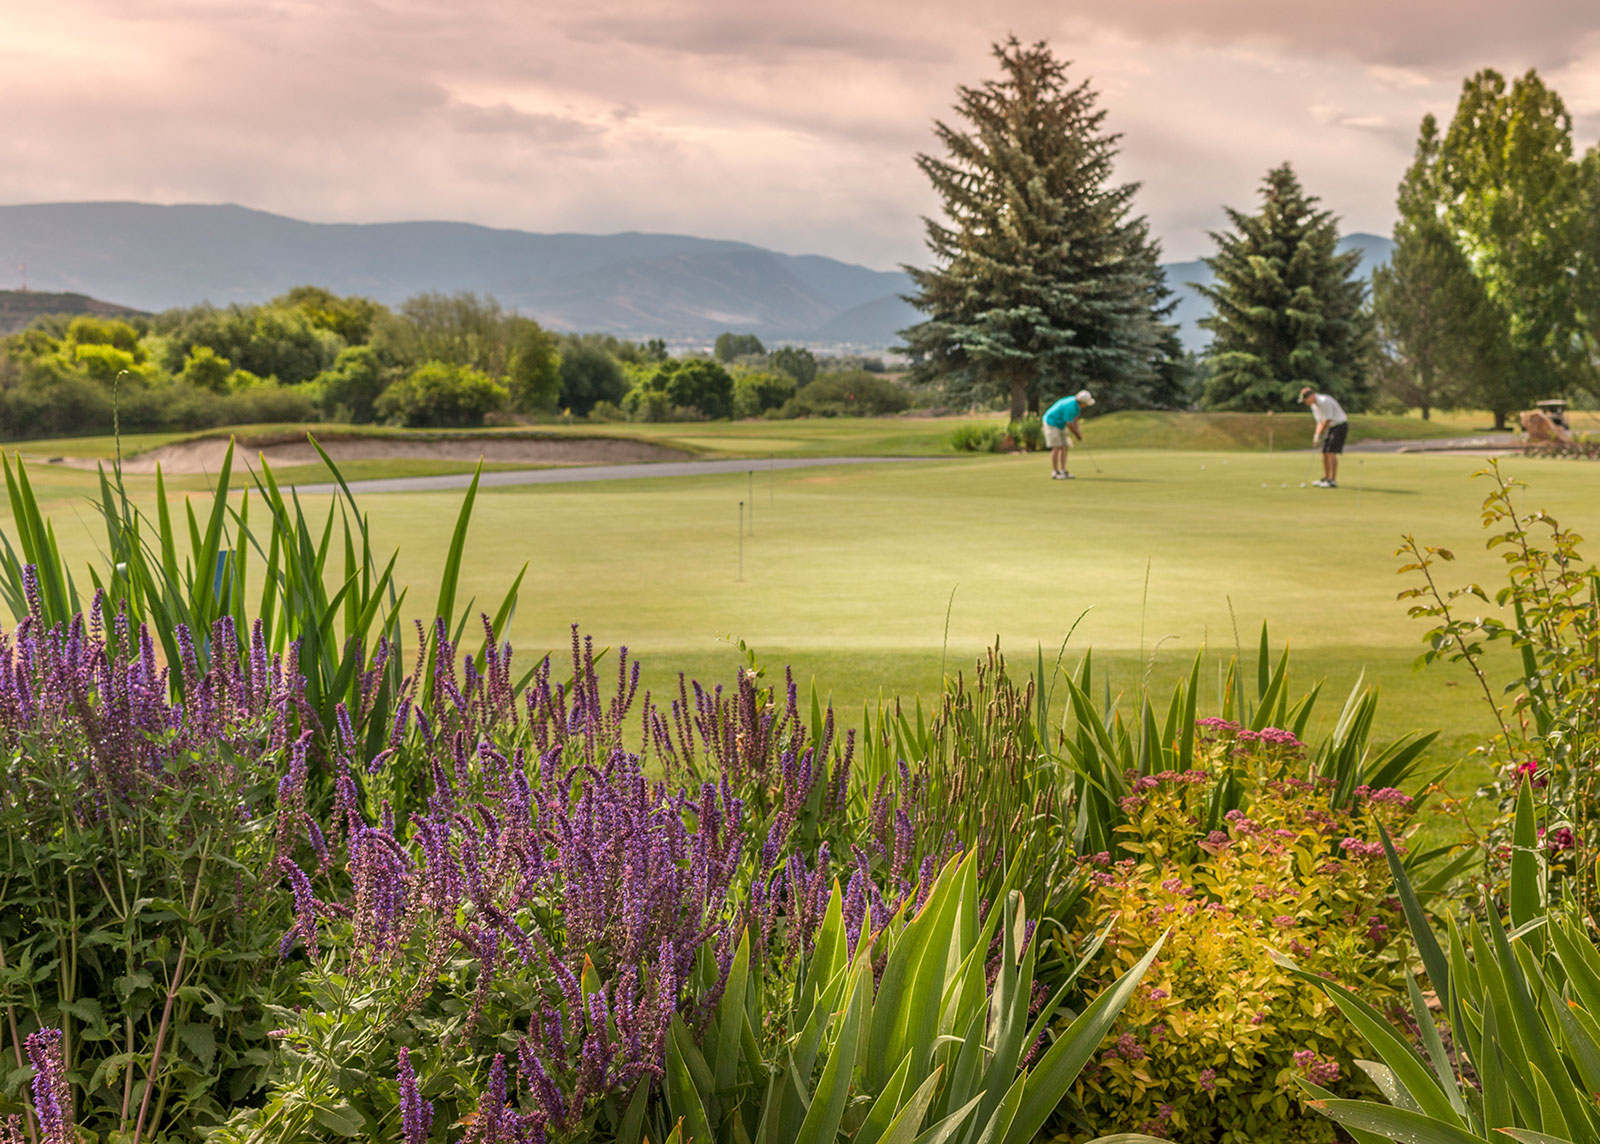 Gorgeous landscaping in the foreground as two men put at the Crater Springs golf course